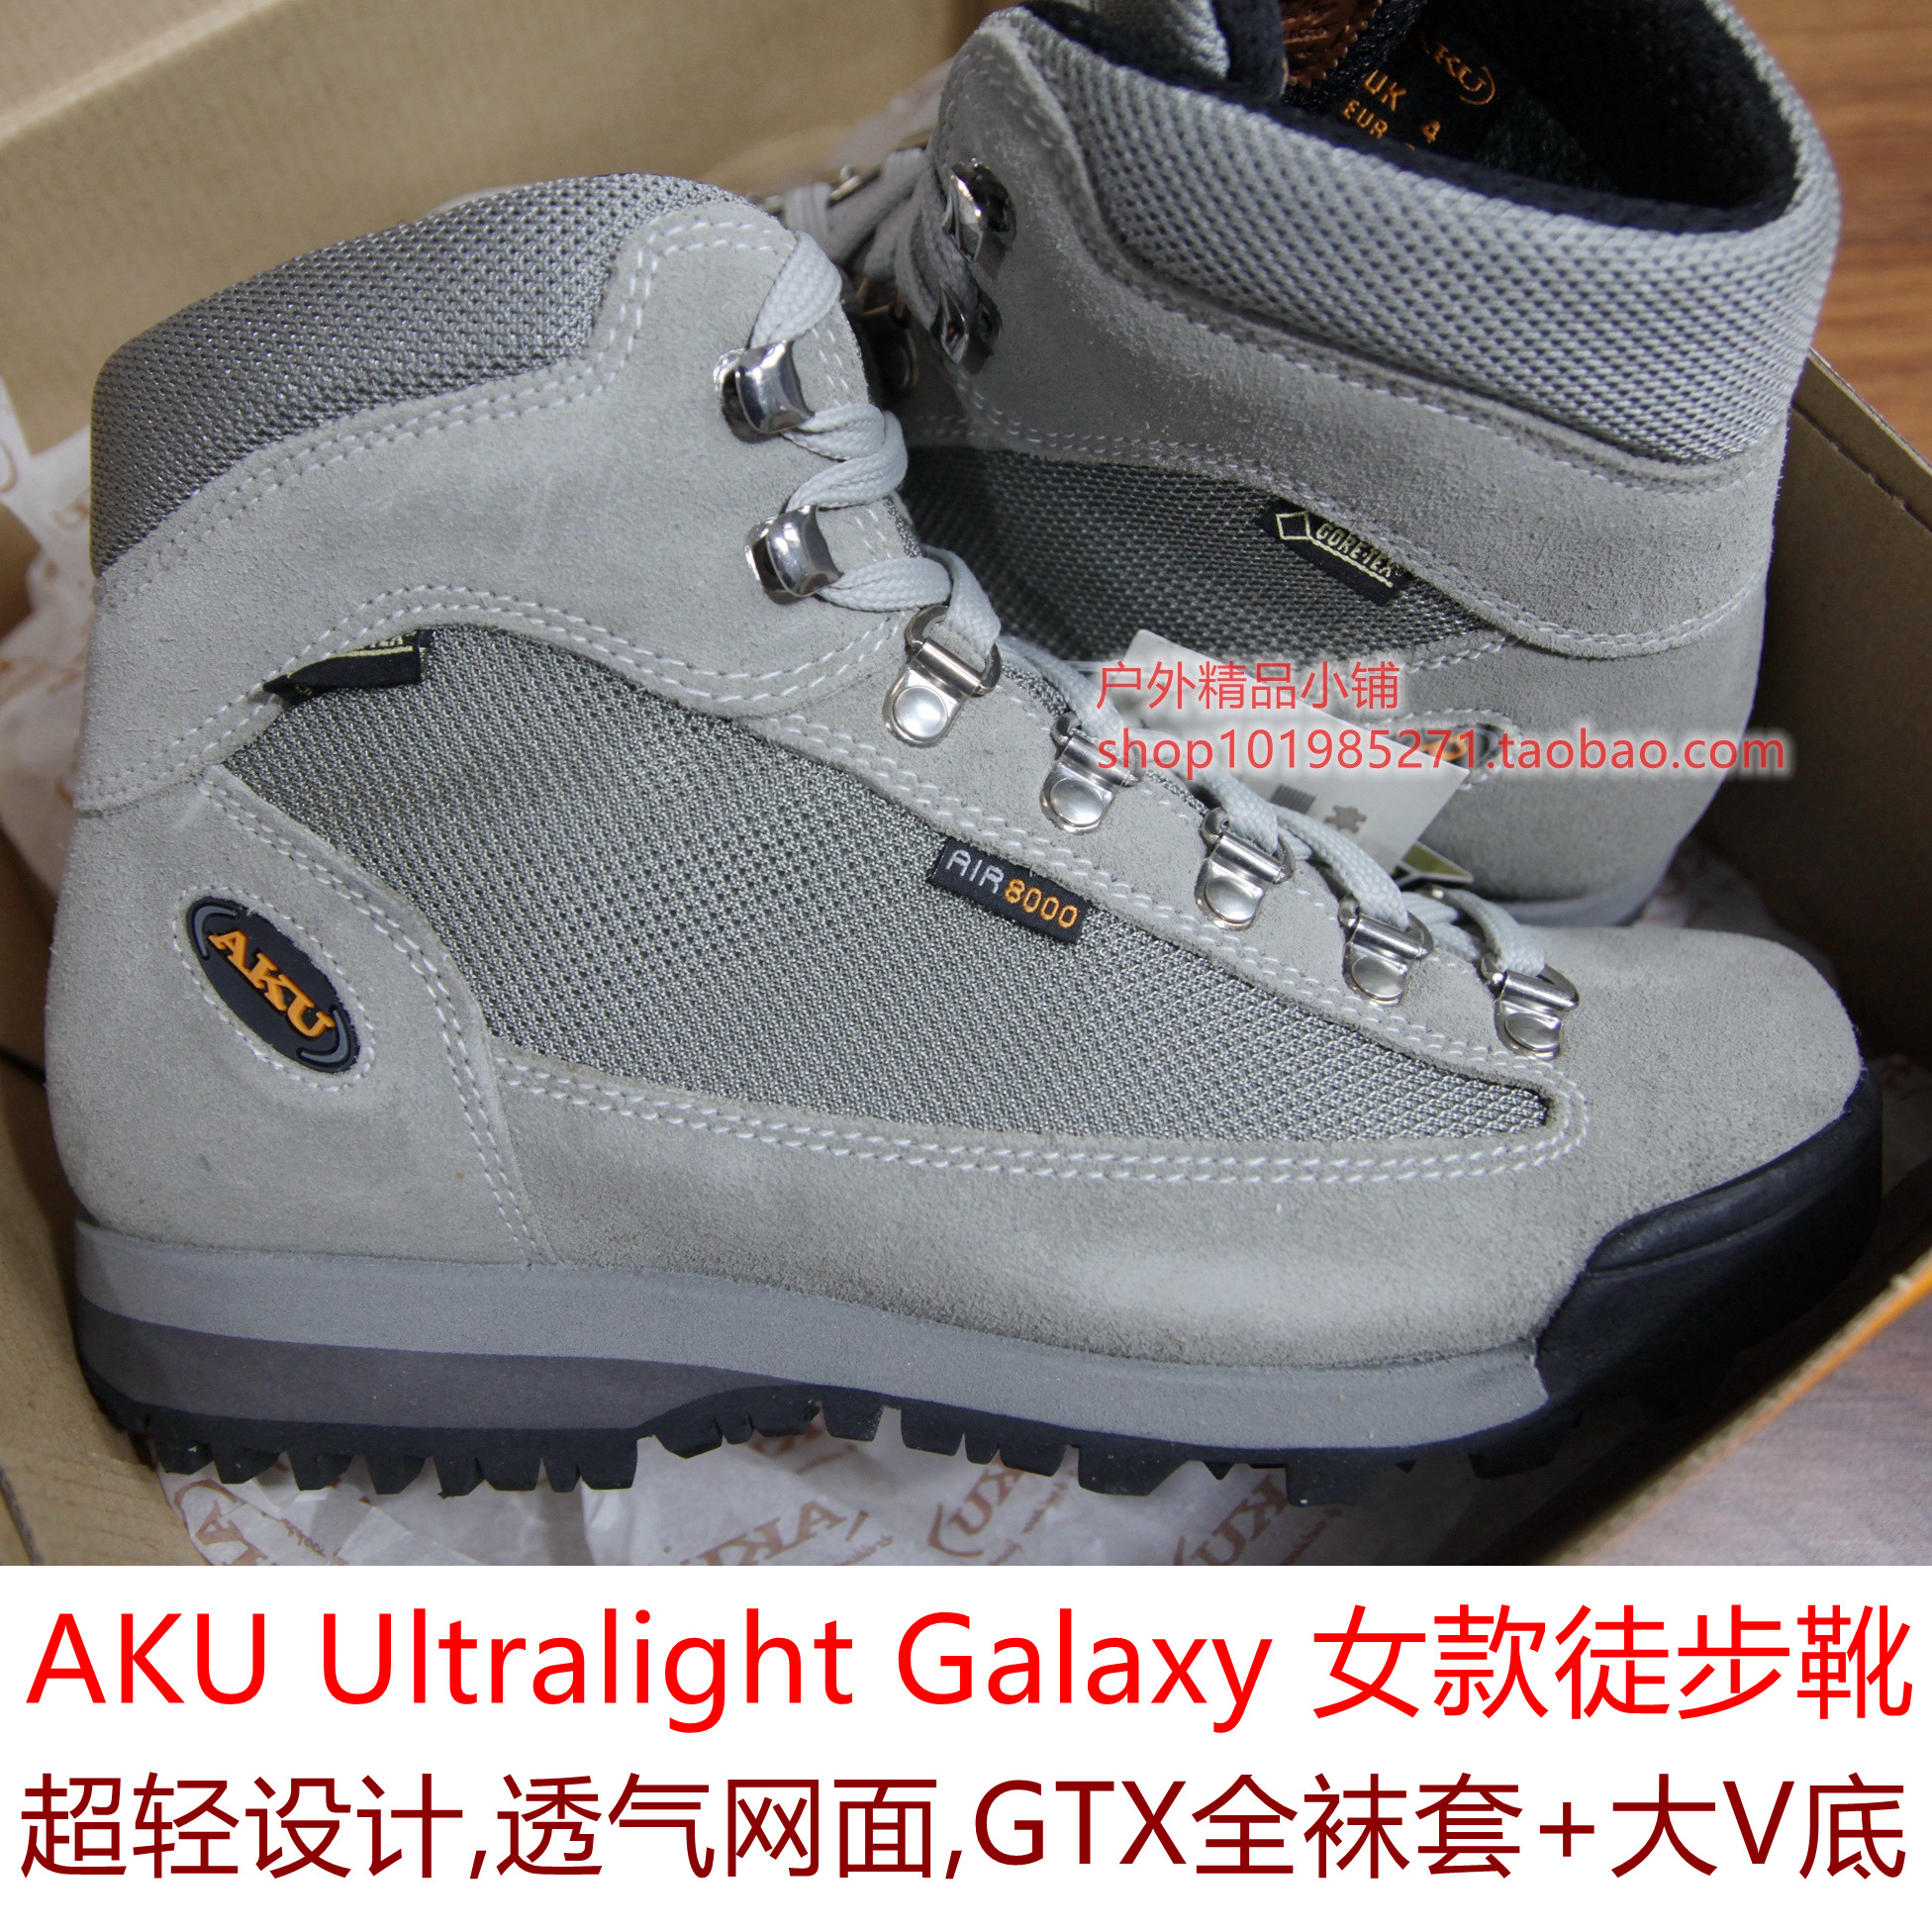 AKU Ultralight Galaxy Gore-Tex GTX Vibram ladies outdoor hiking trekking  shoes 1a2e27e61fc